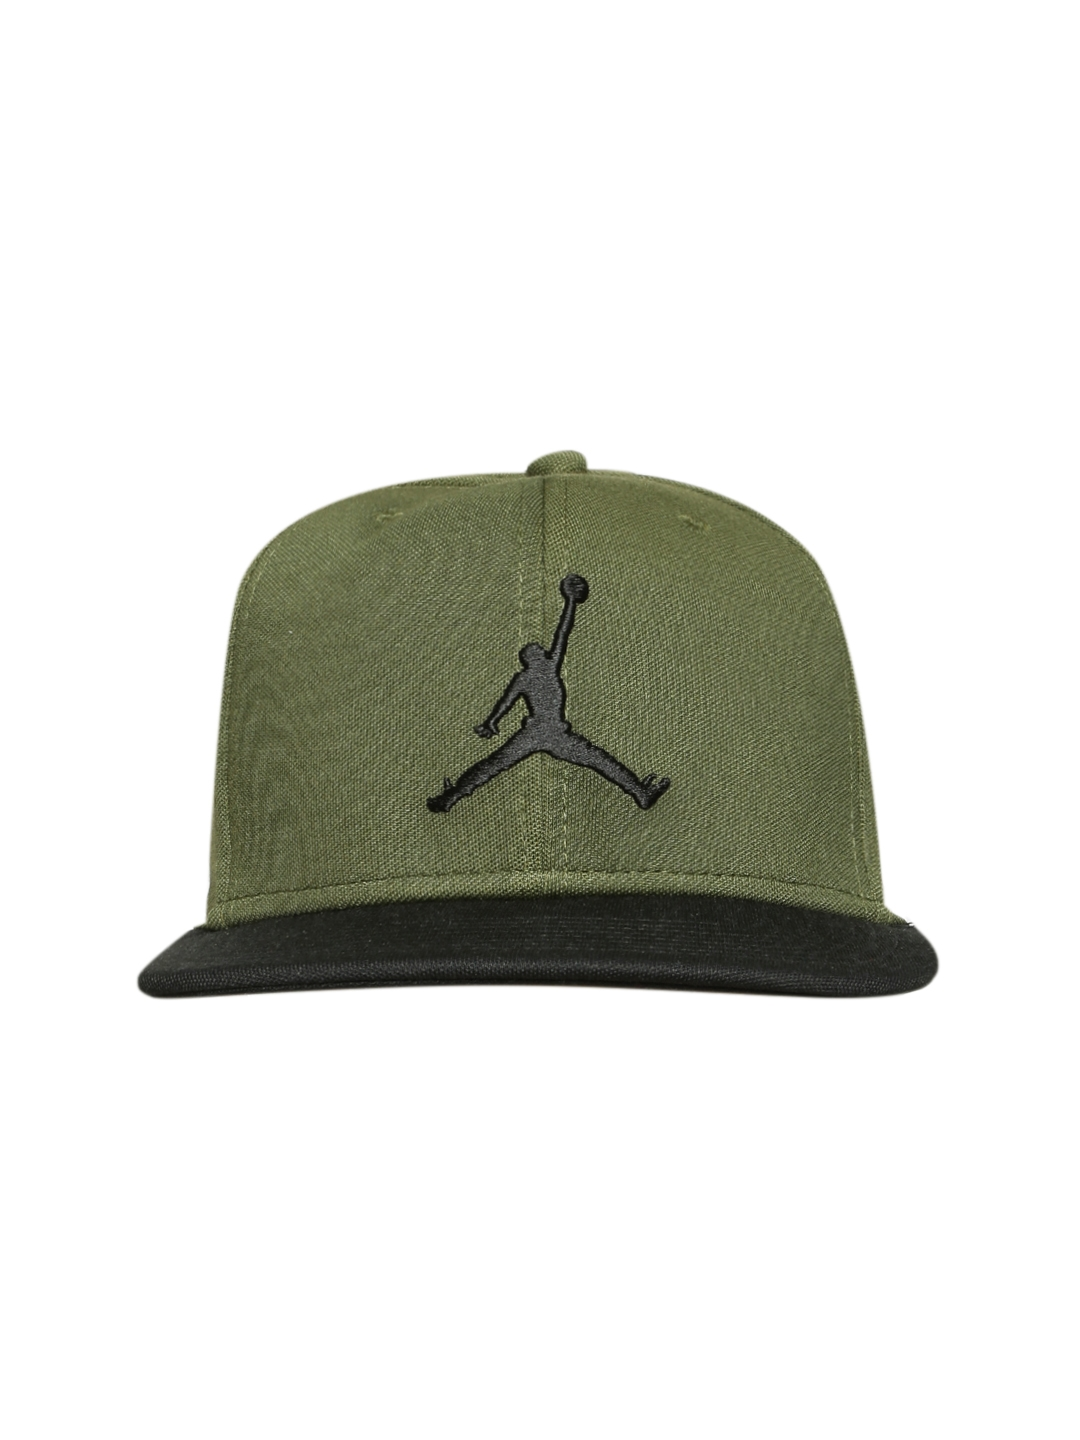 234a7a27517621 Buy Nike Unisex Olive Green JORDAN JUMPMAN Snapback Cap - Caps for ...